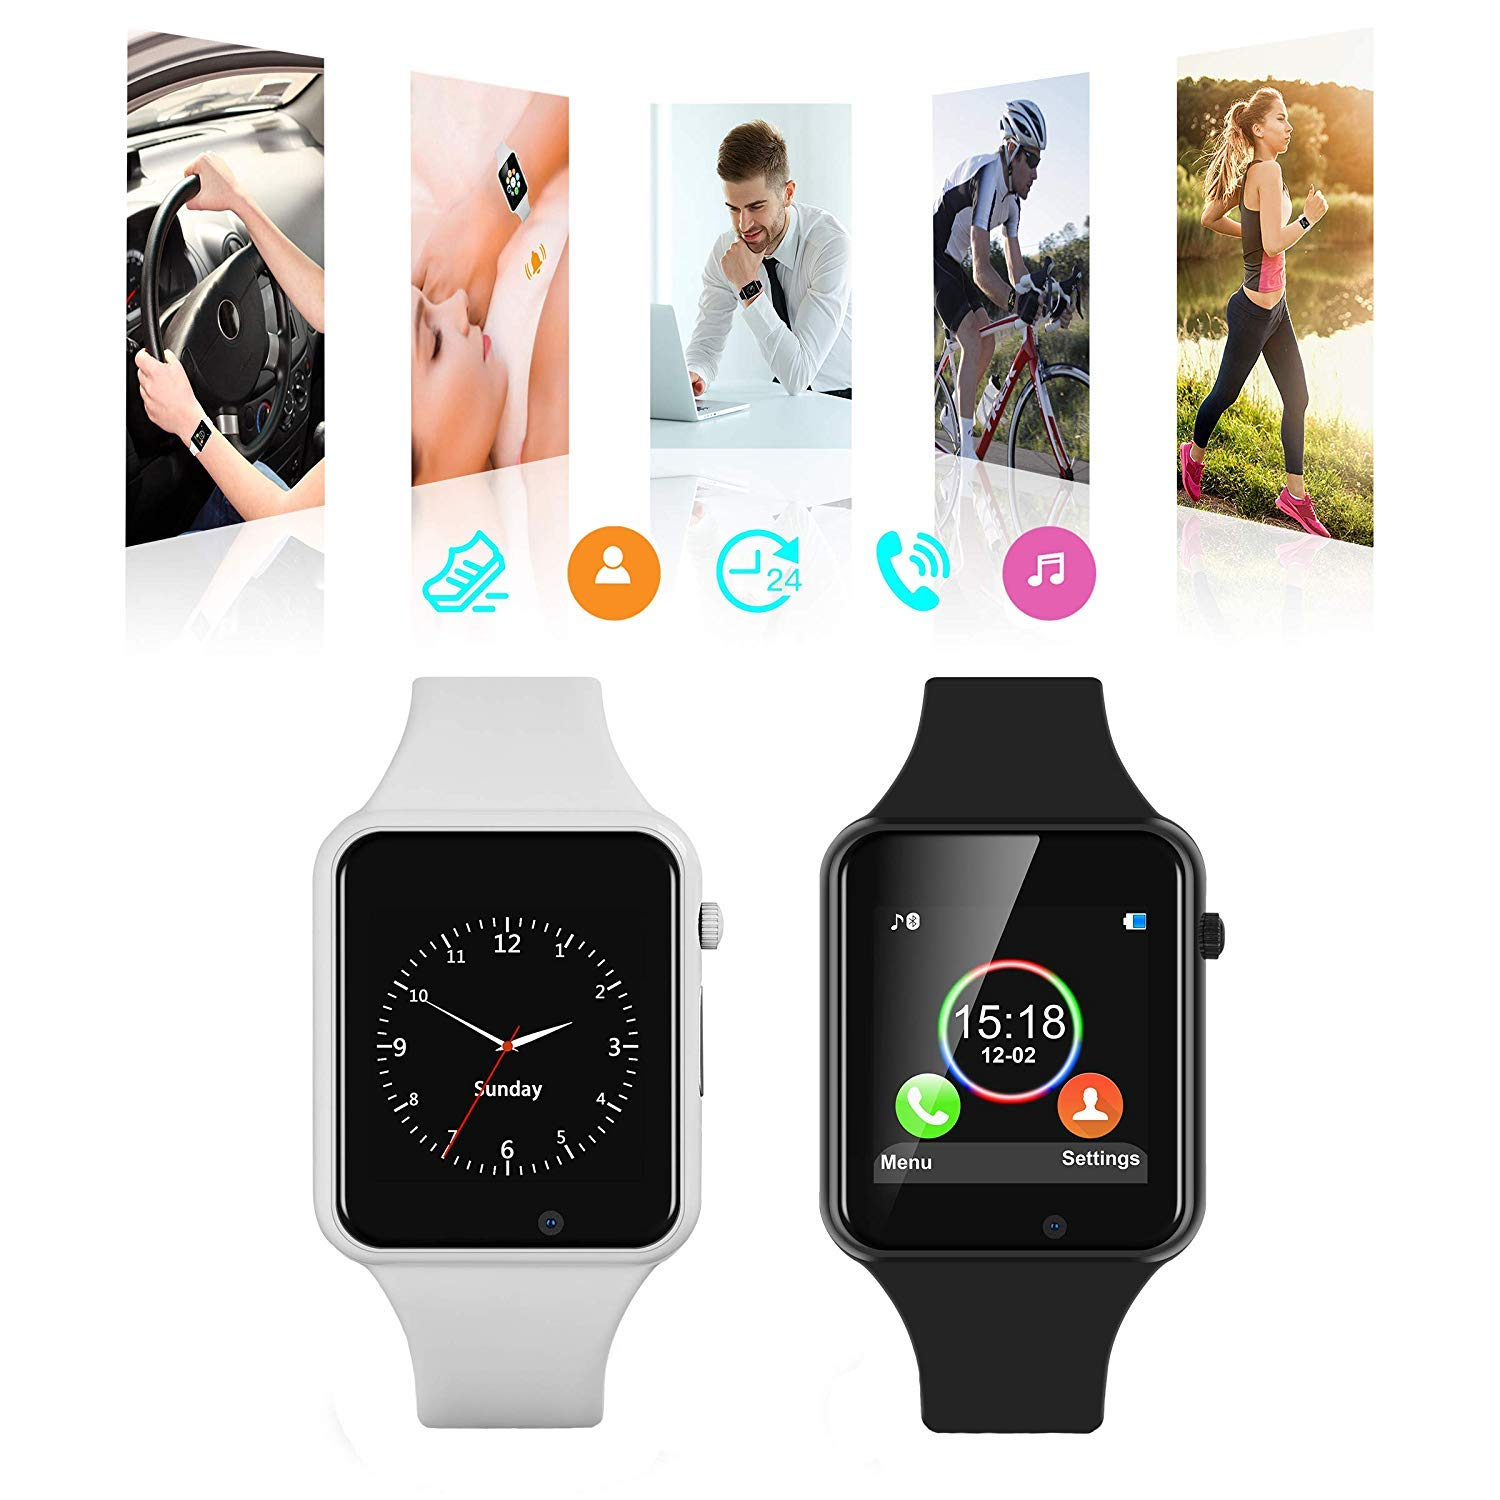 Smart Watches for Android, Doroim Bluetooth Smart Watches Unlocked Touch Screen with Anti-Lost, Camera,Sleep Monitor, SIM/TF Card Slot Compatible iOS, LG, Samsung Phones for Men Women Youth (Black)